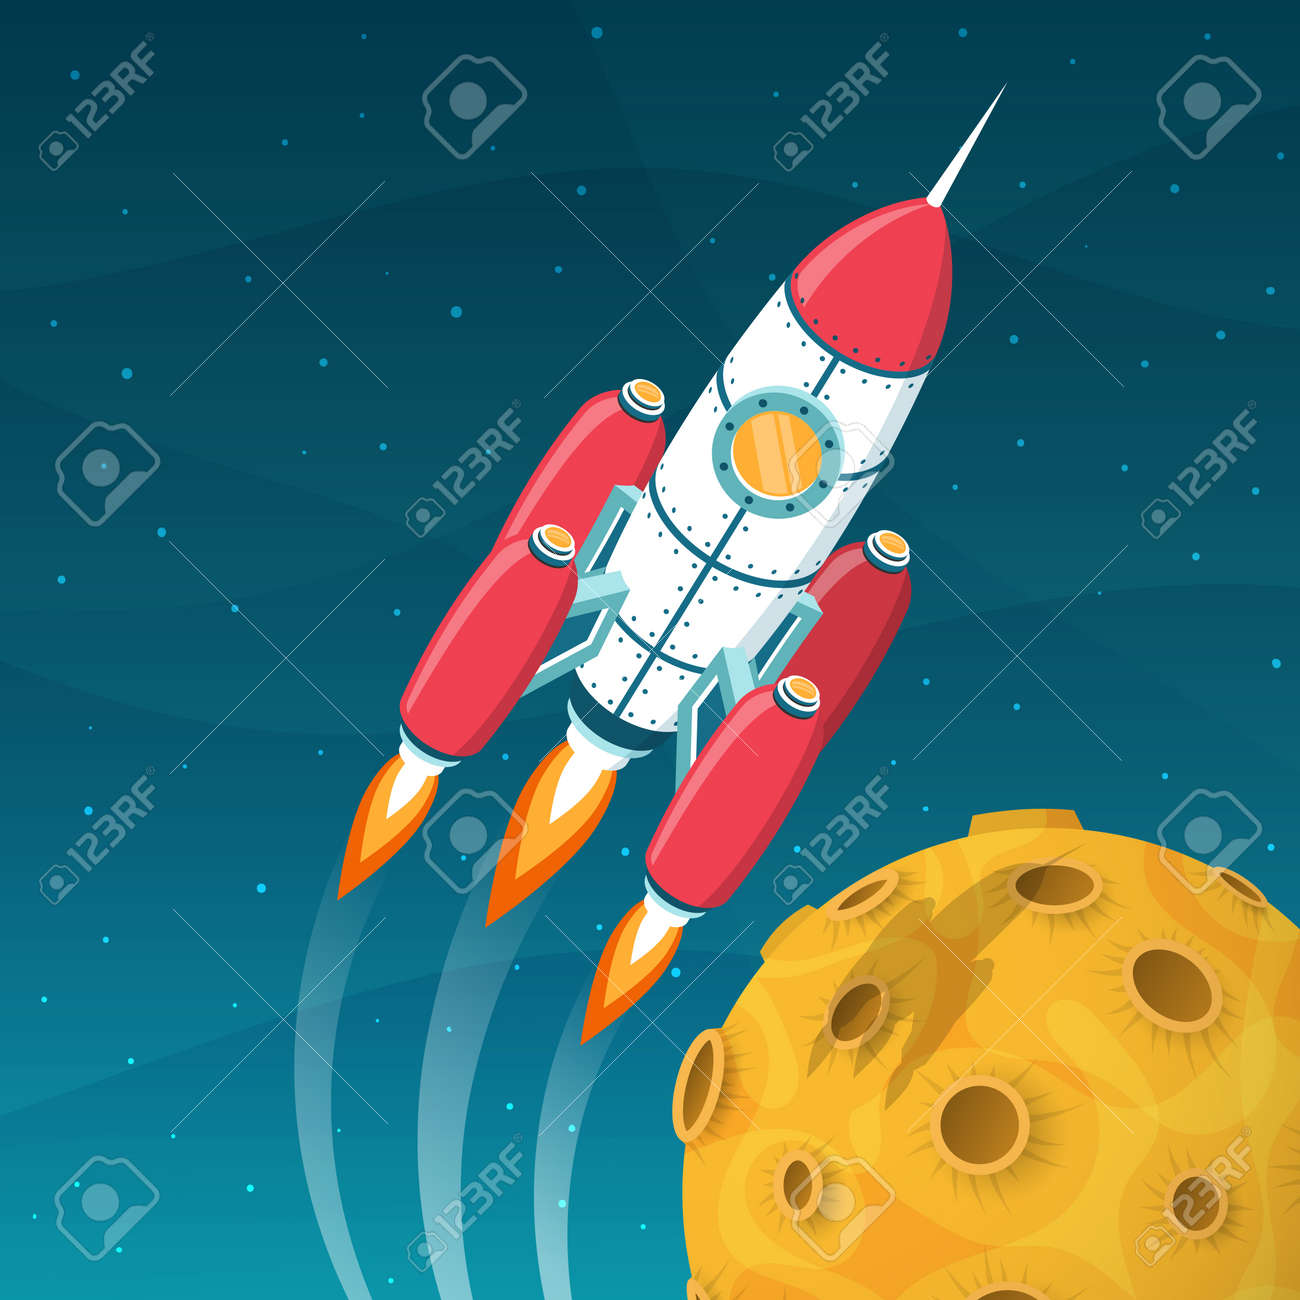 Rocket spacecraft  flies around a yellow planet with craters. 3d isometric space vector illustration. Stock Vector - 92805167